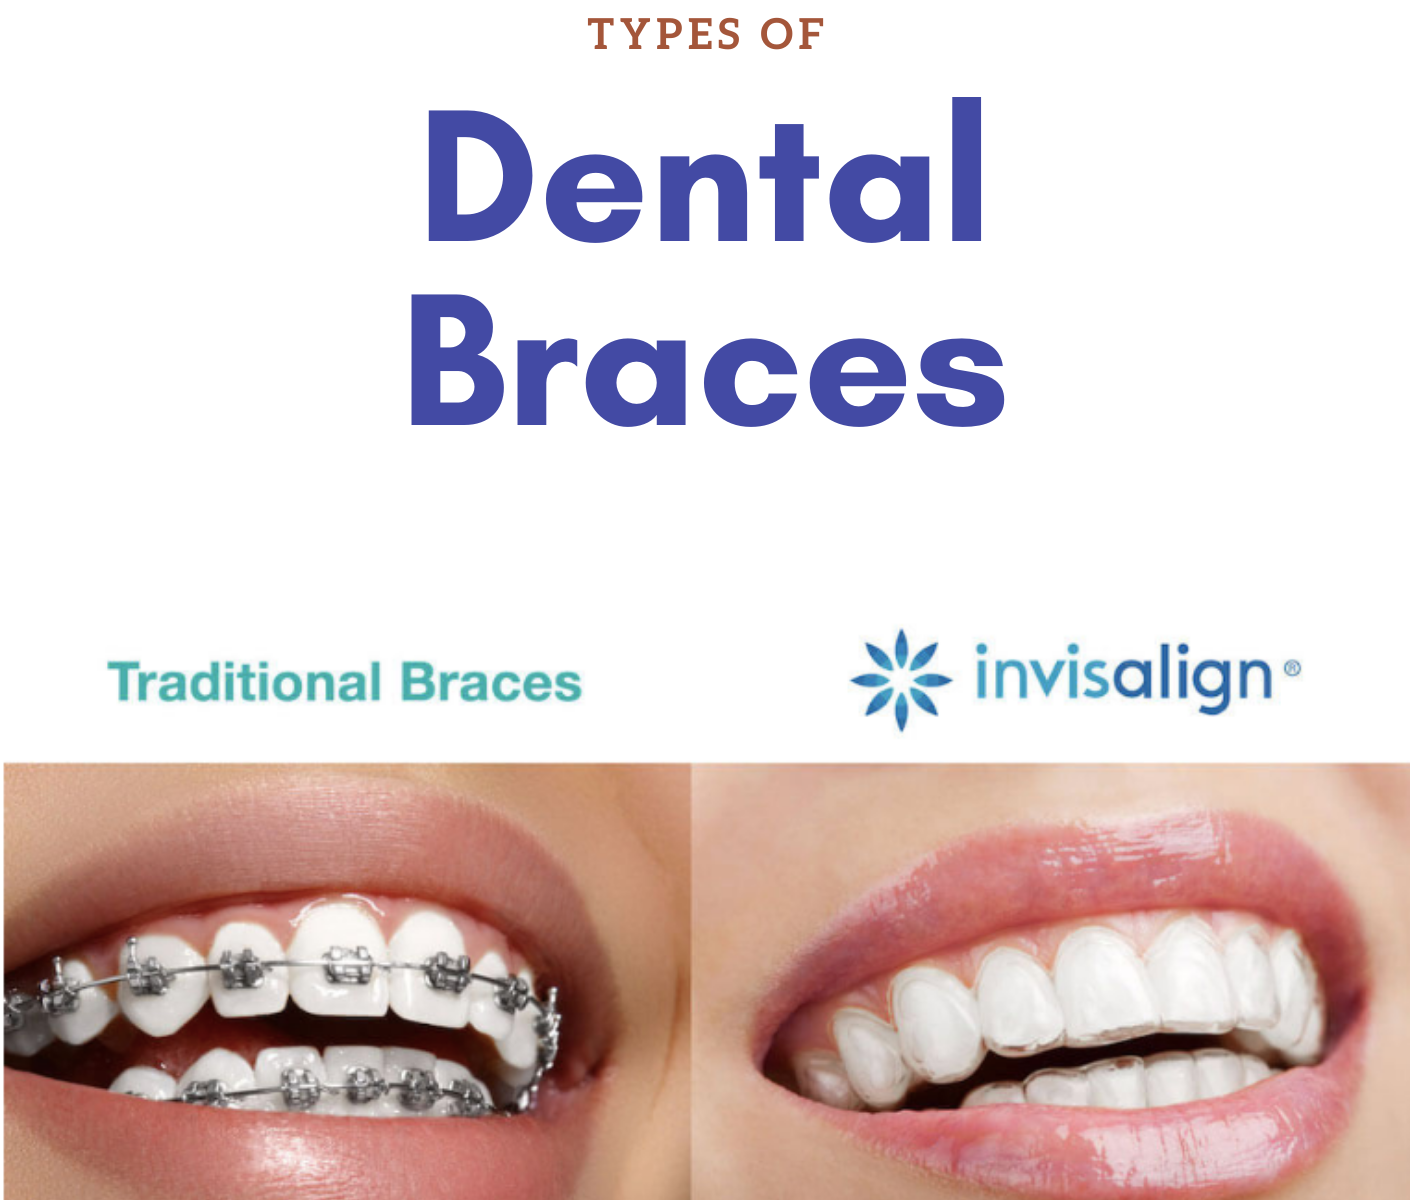 Types of dental braces